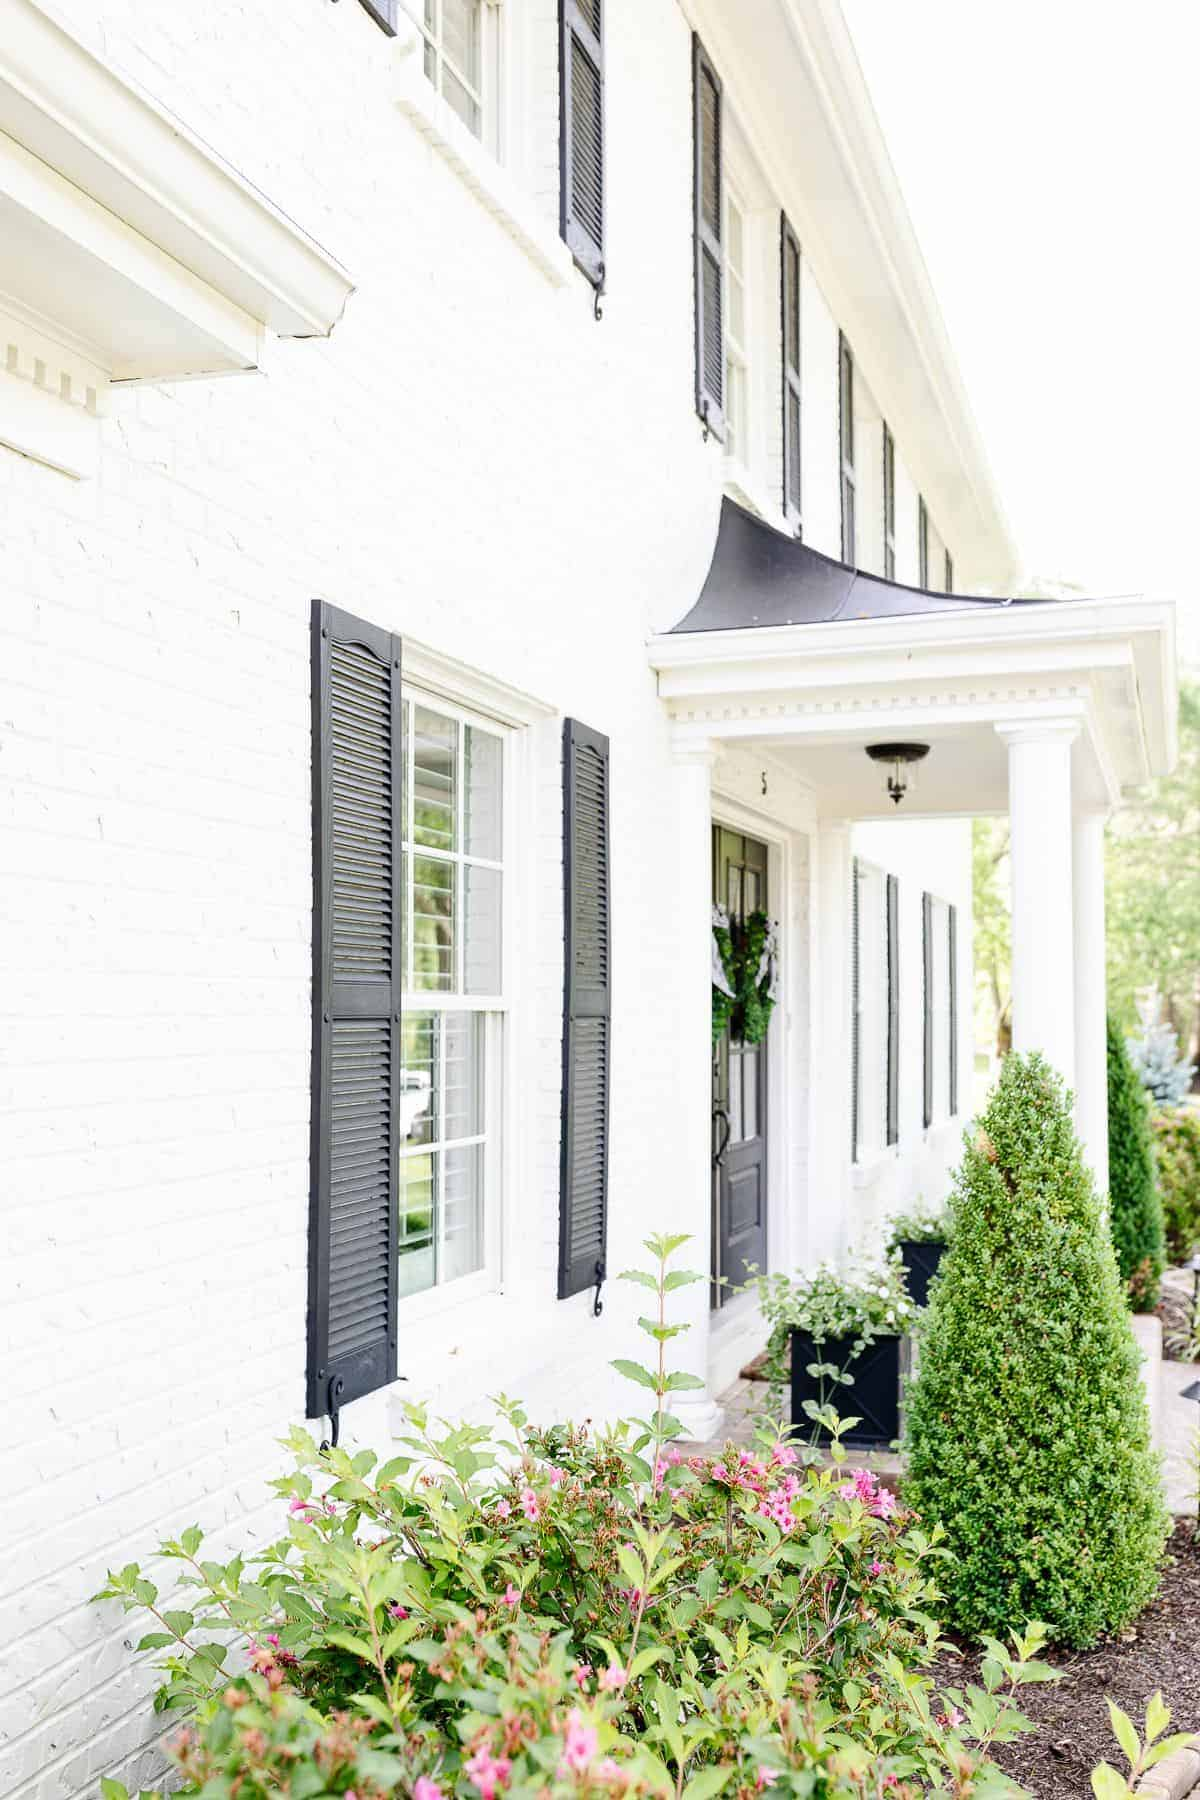 A white brick house with black shutters.